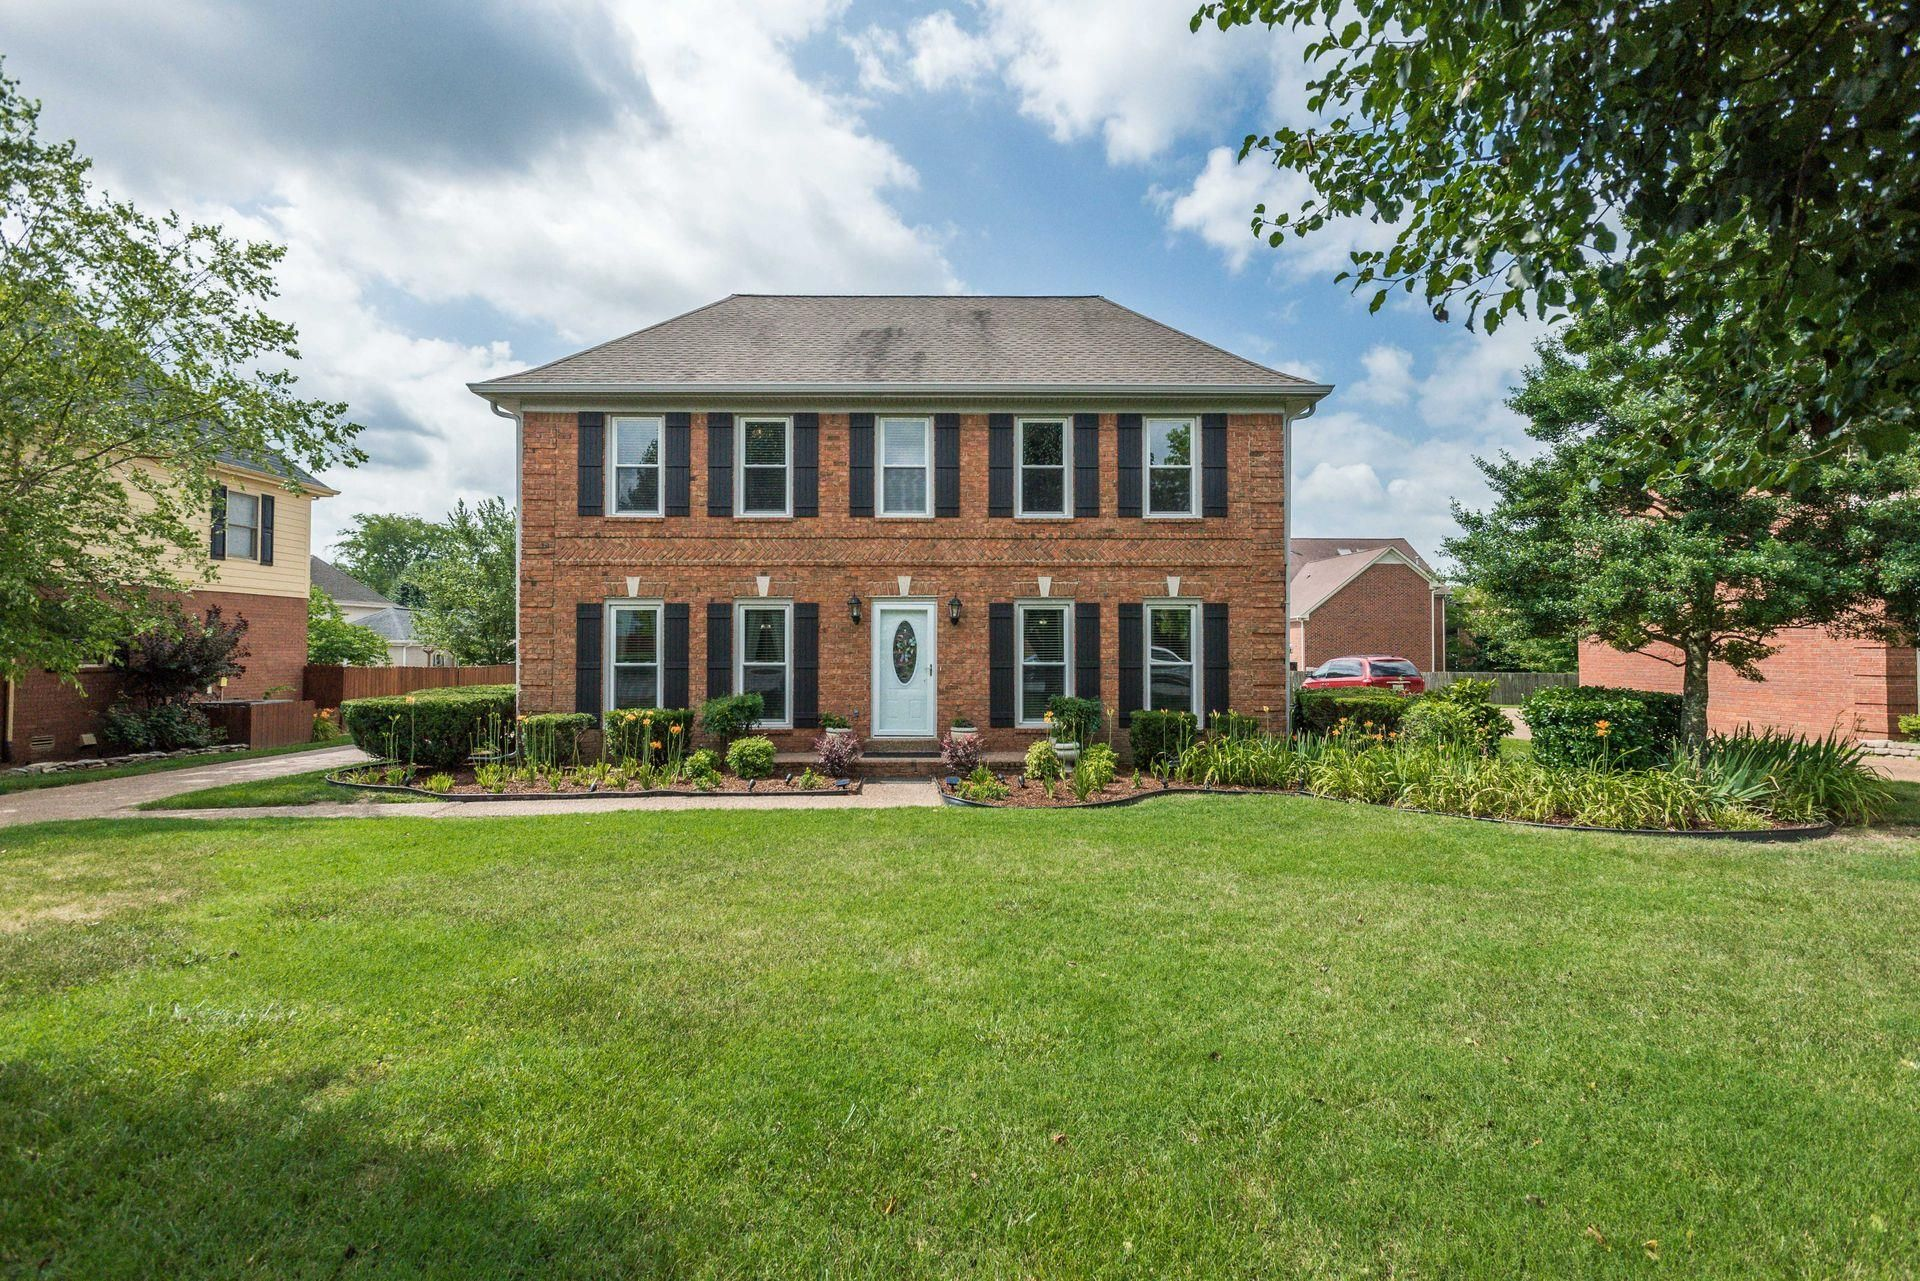 371 Stonegate Dr Franklin Tn 37064 3 Bed 2 5 Bath 424 900 Fantastic Former Mod Home House Styles Mansions